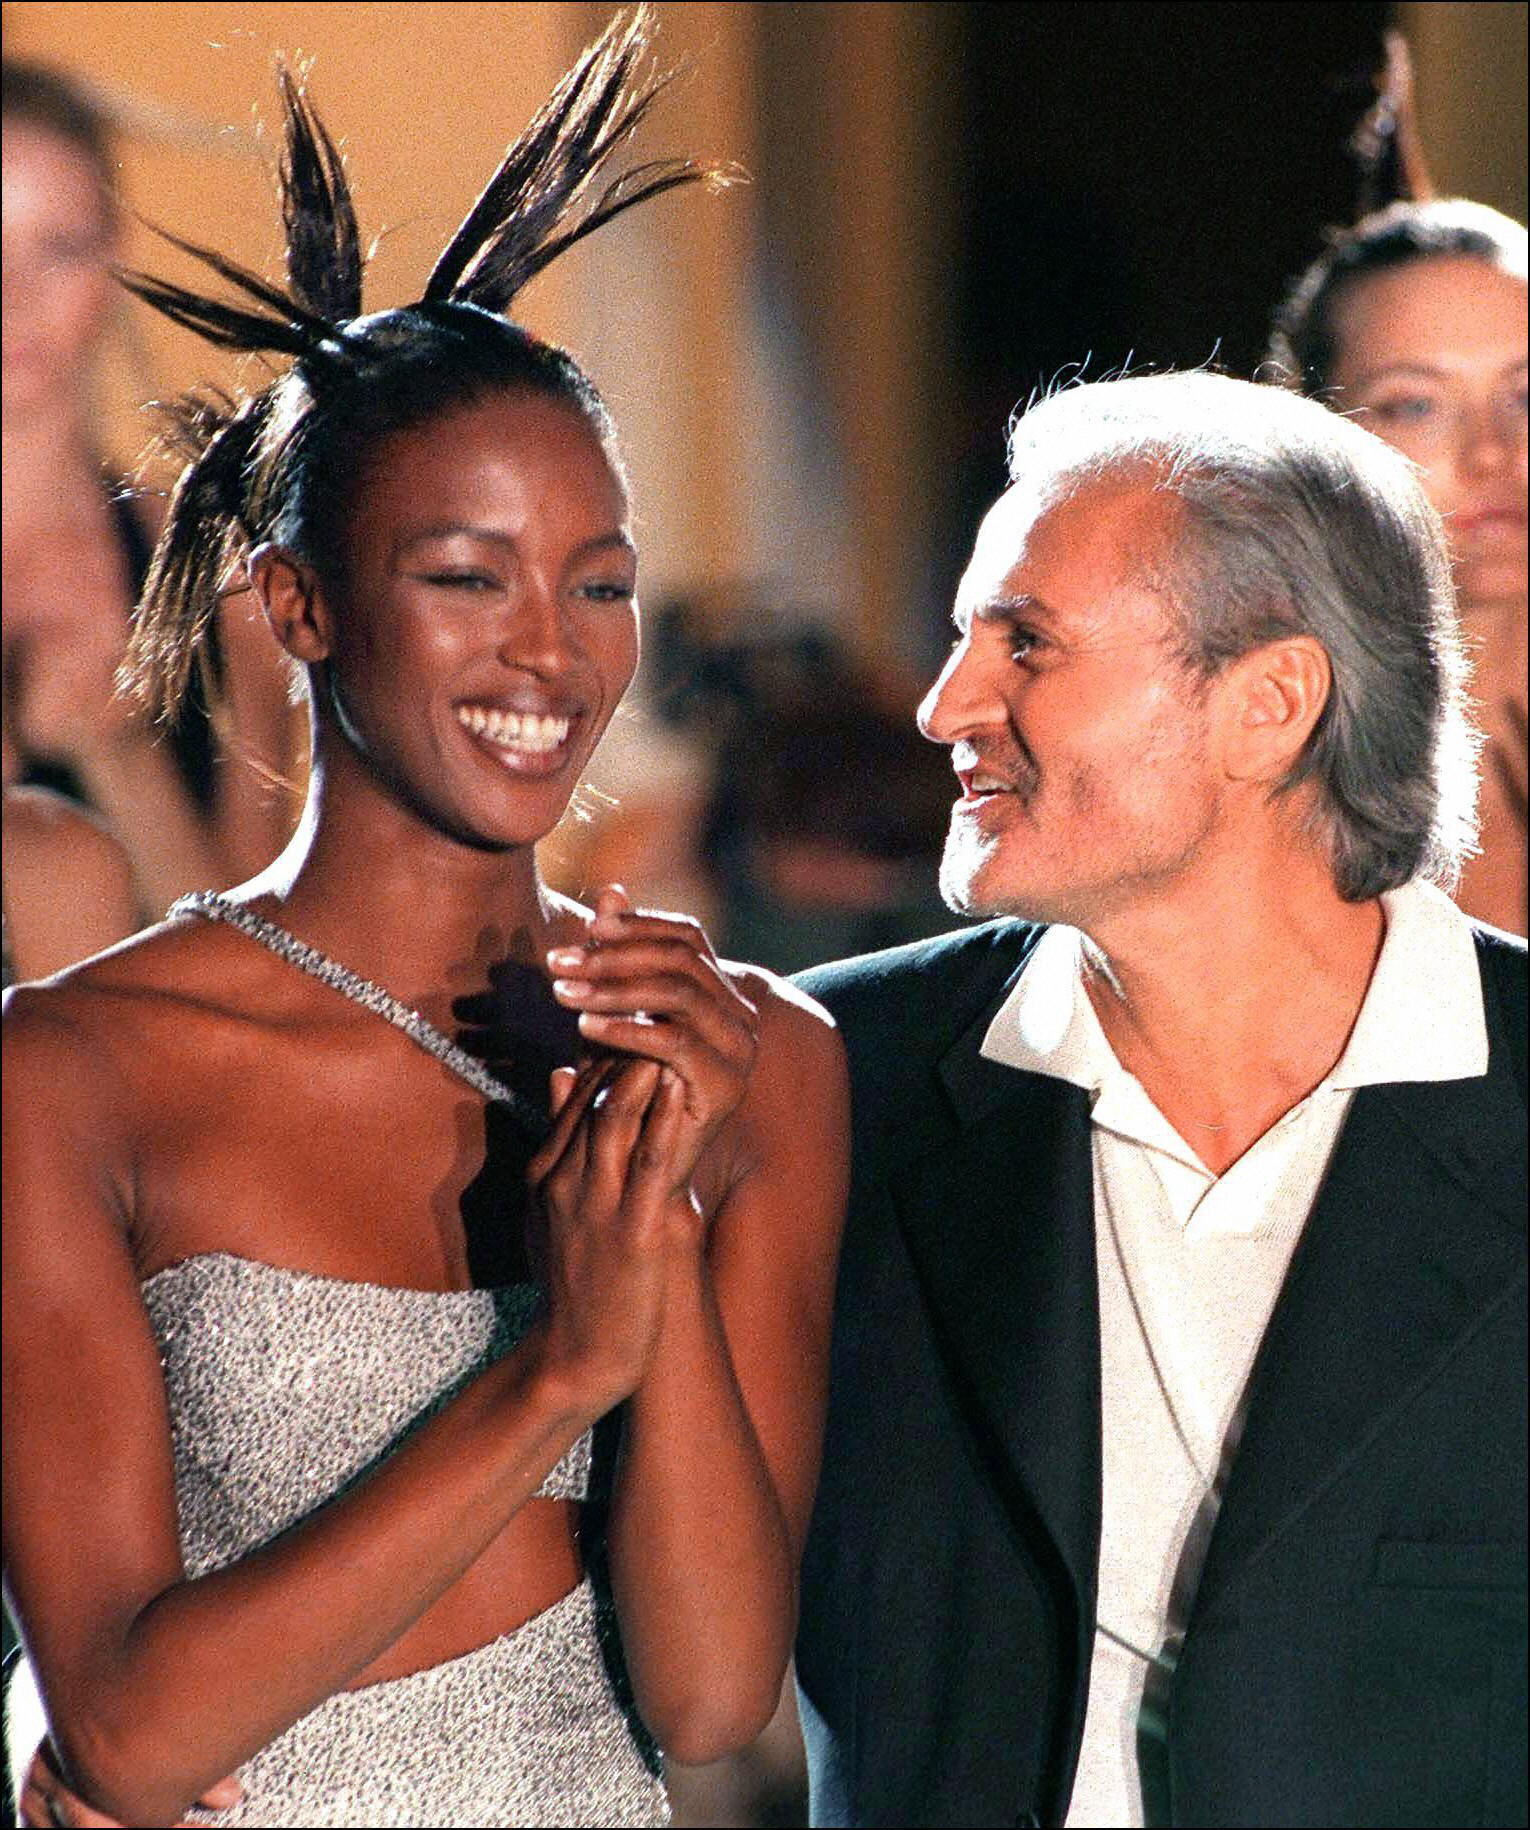 Naomi Campbell and Gianni Versace